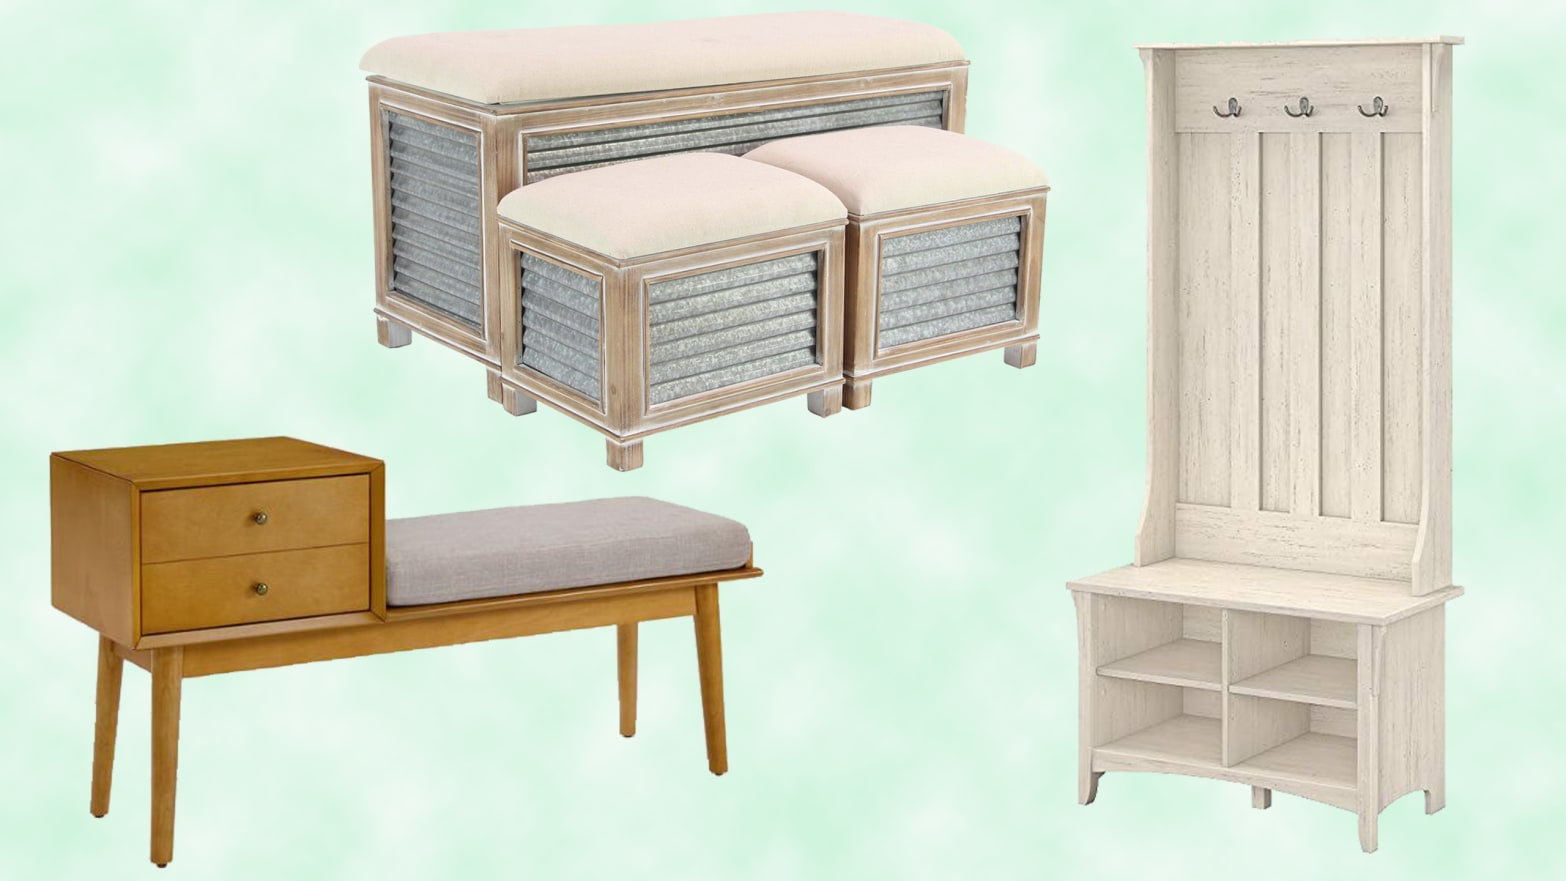 Surprising Storage Benches For Space Saving Andrewgaddart Wooden Chair Designs For Living Room Andrewgaddartcom